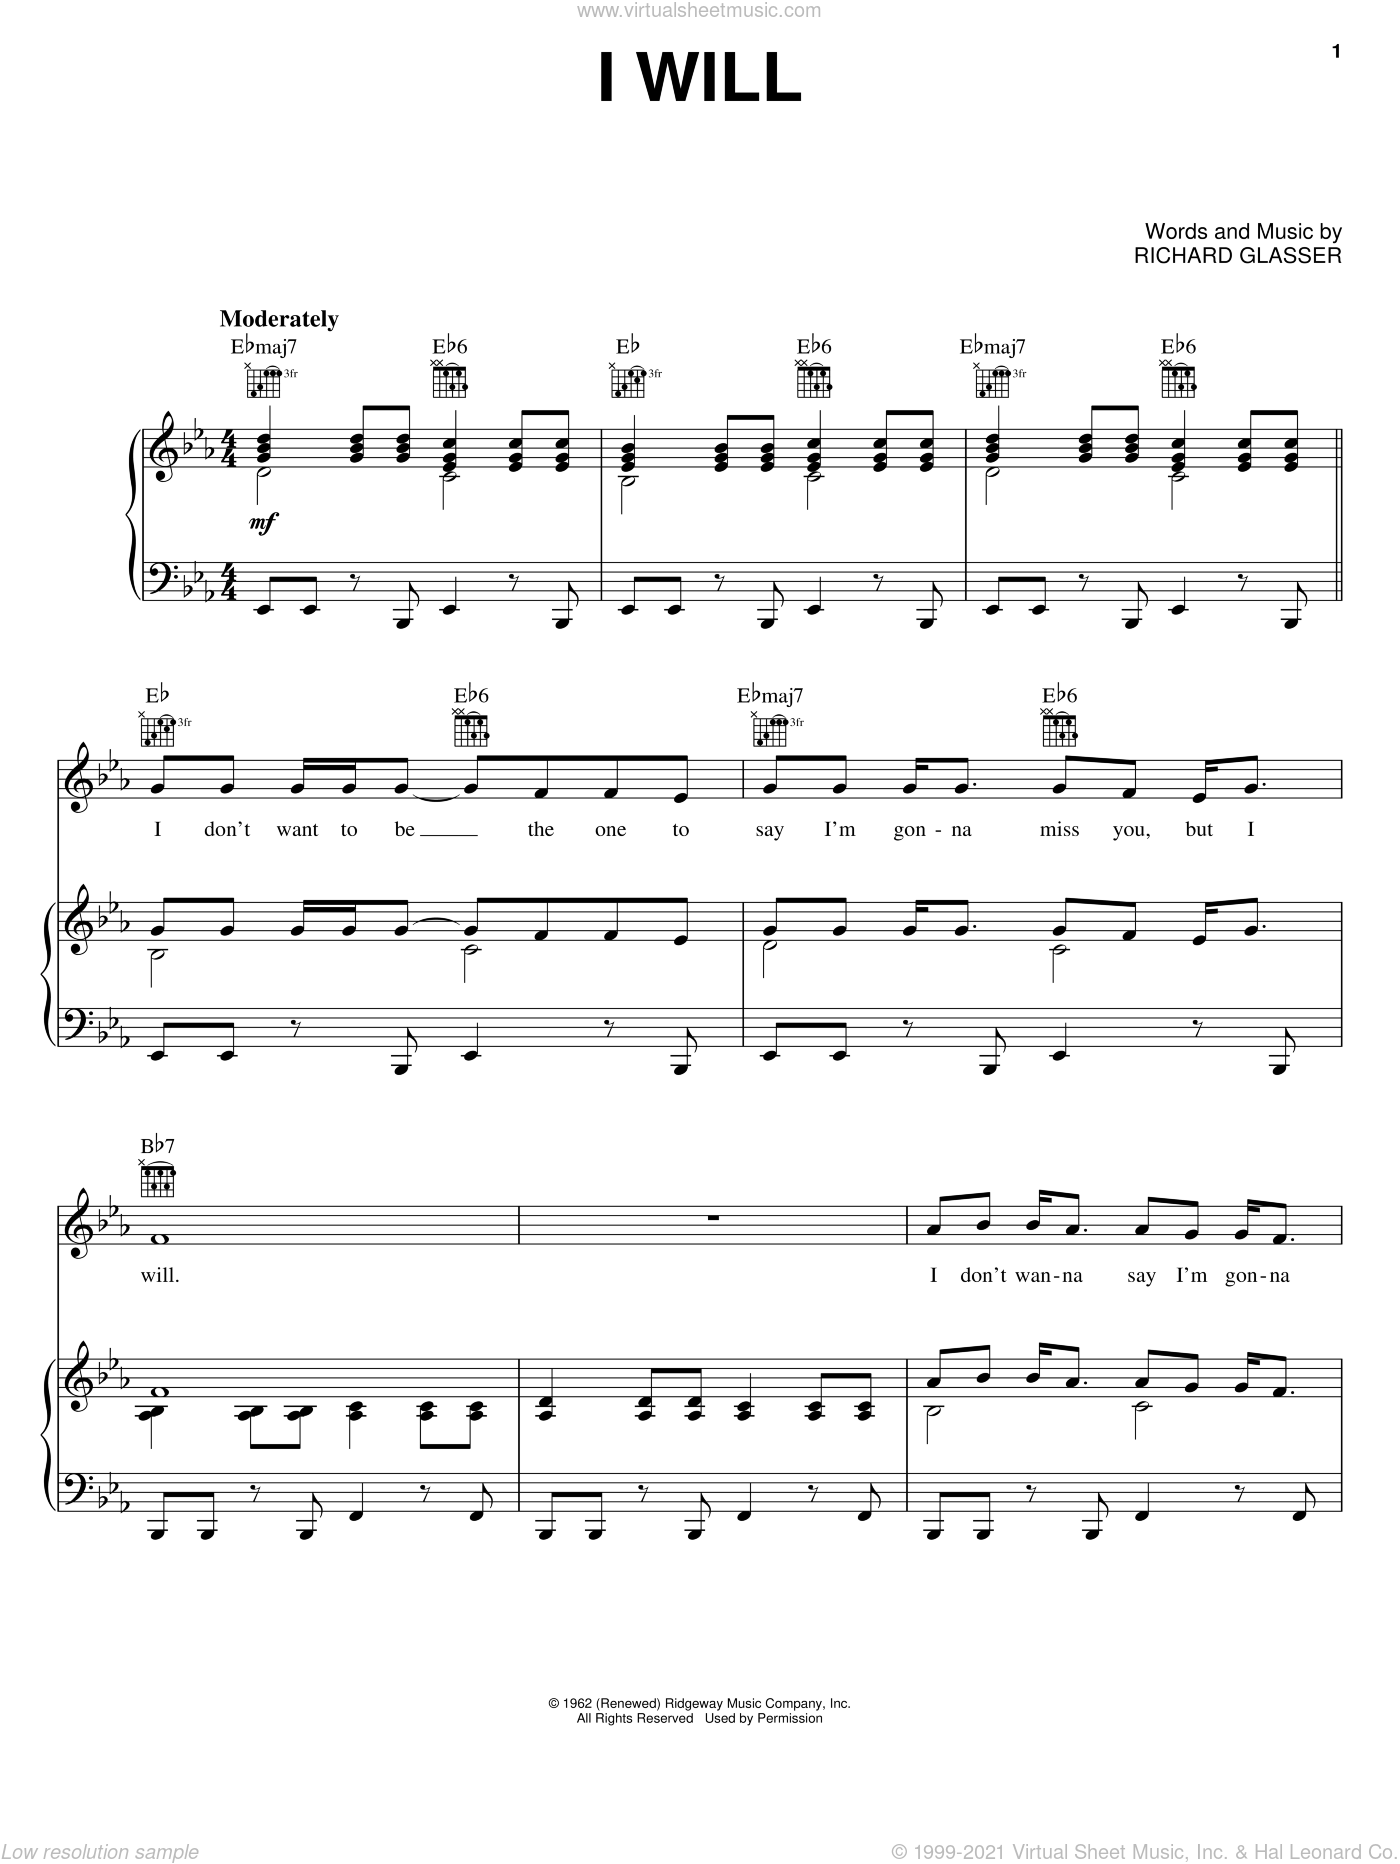 I Will sheet music for voice, piano or guitar by Richard Glasser